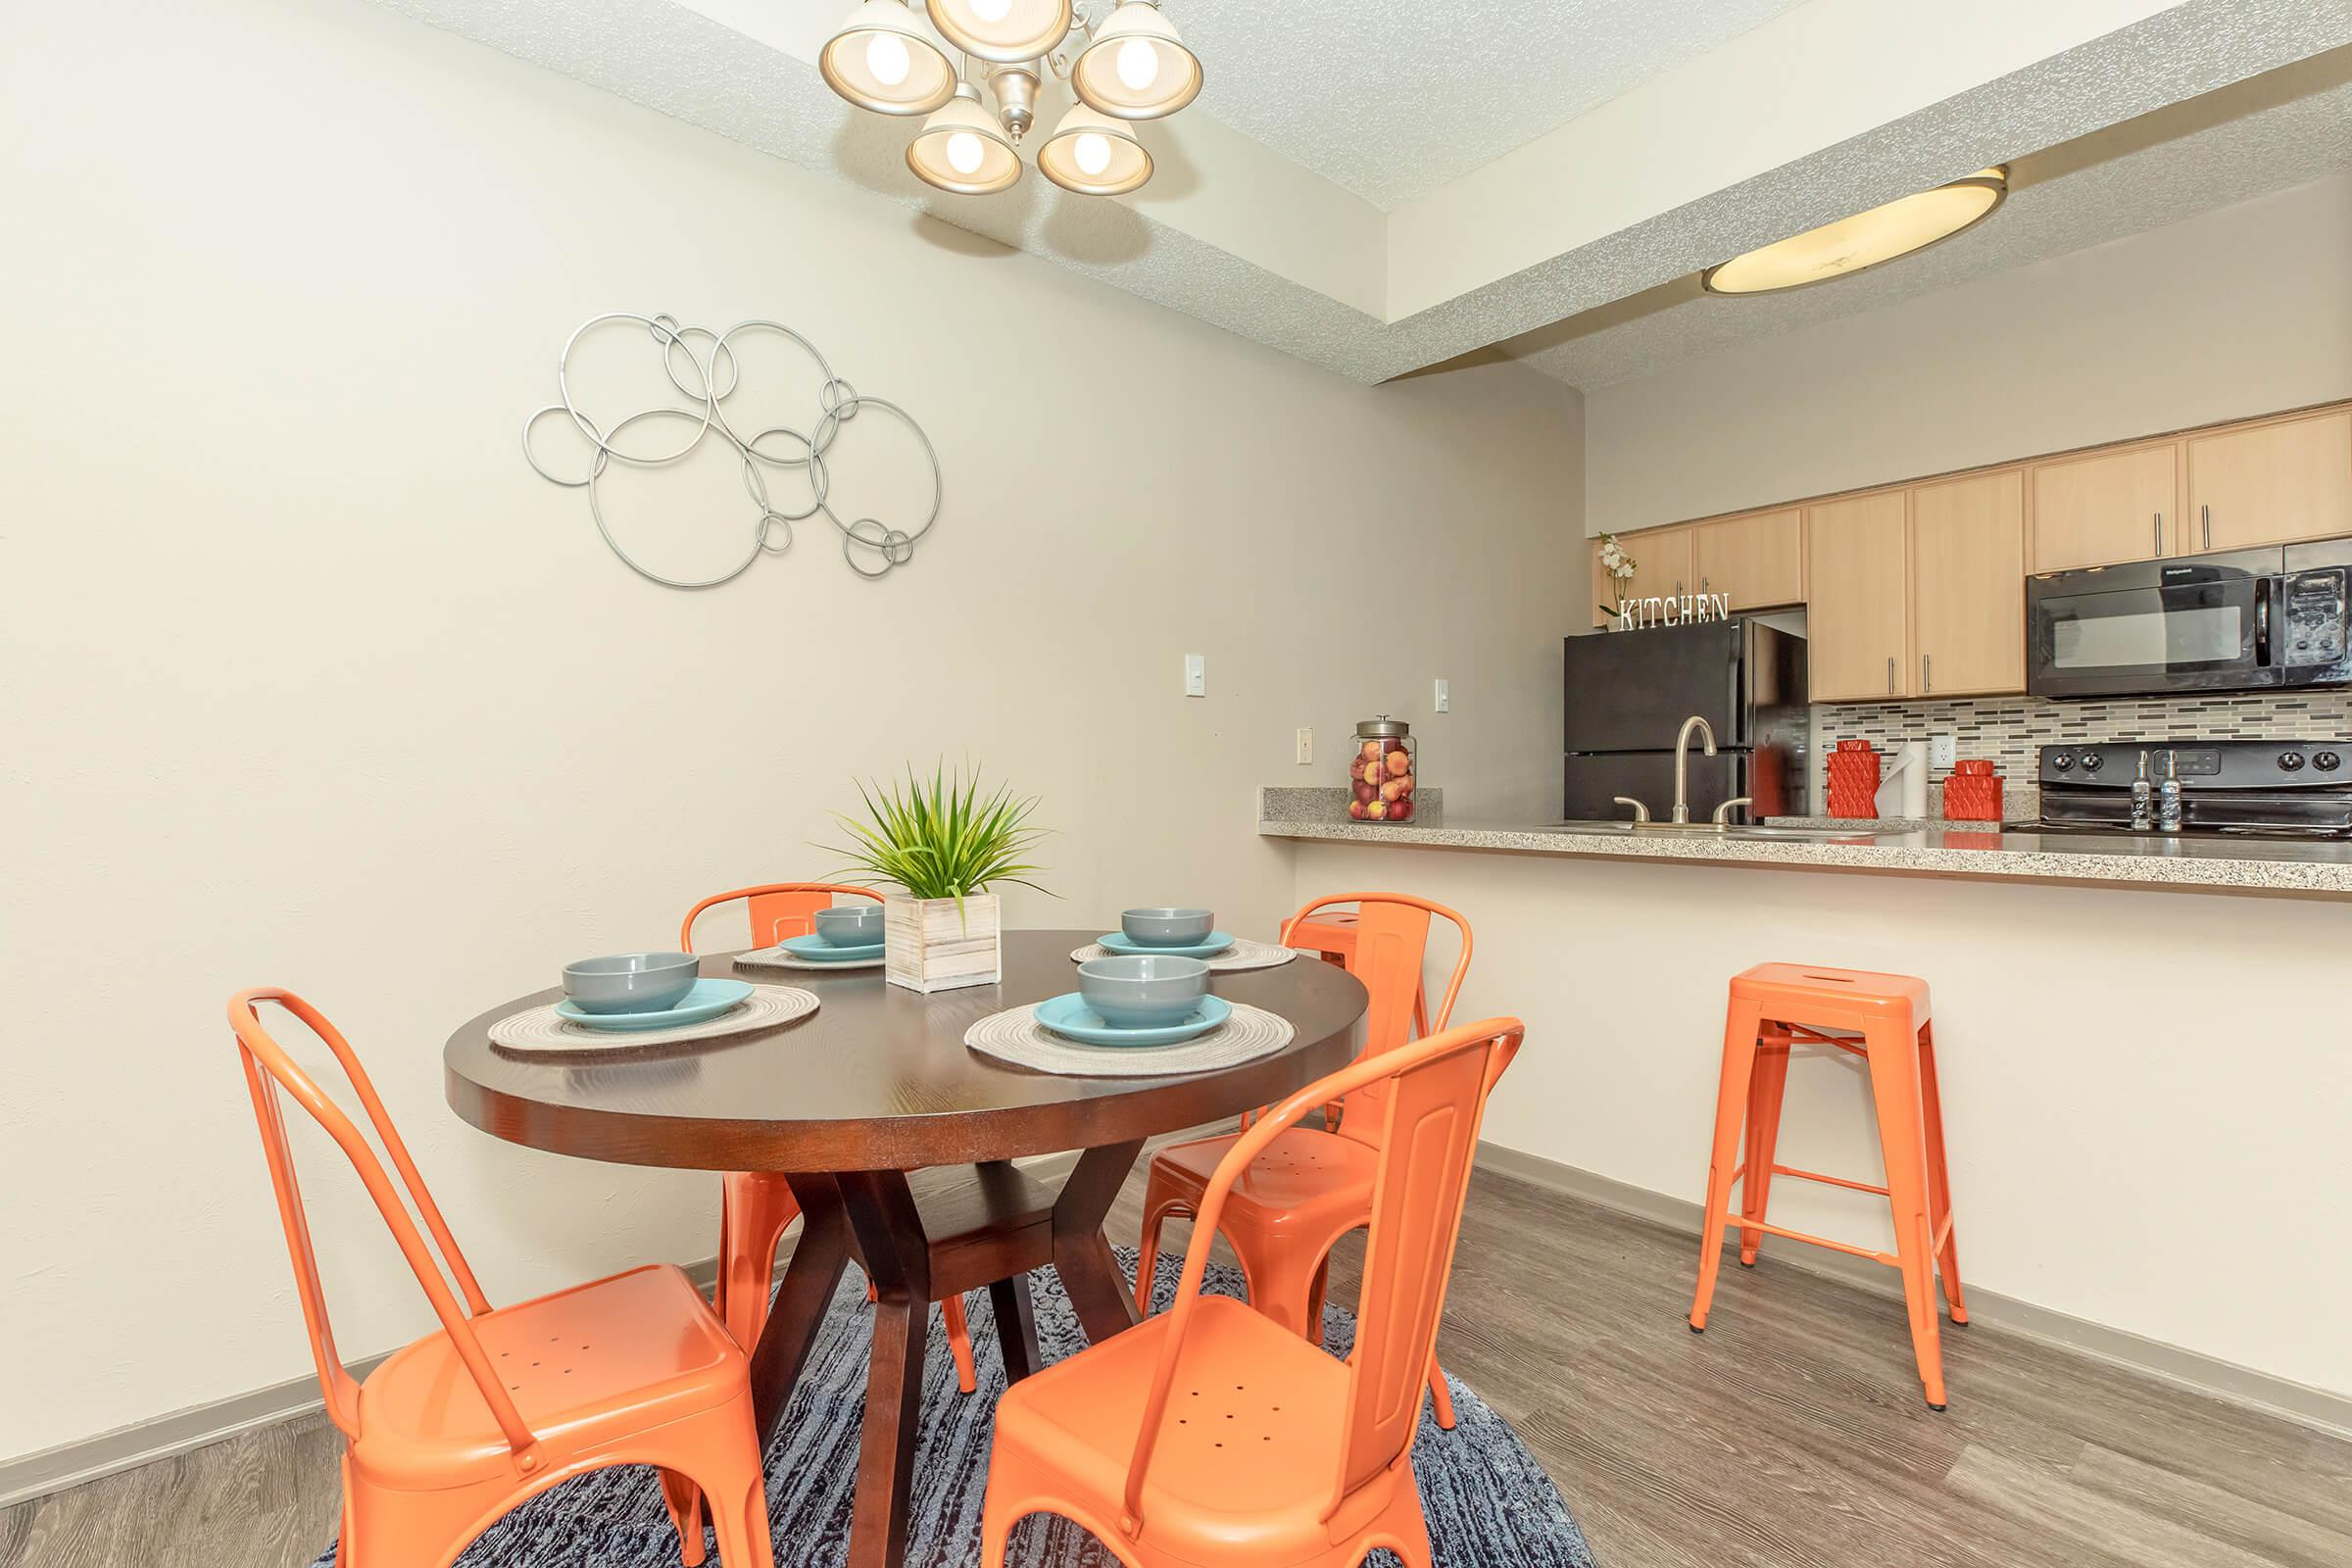 ENDLESS DINING COMFORTS AT VERIDIAN PLACE